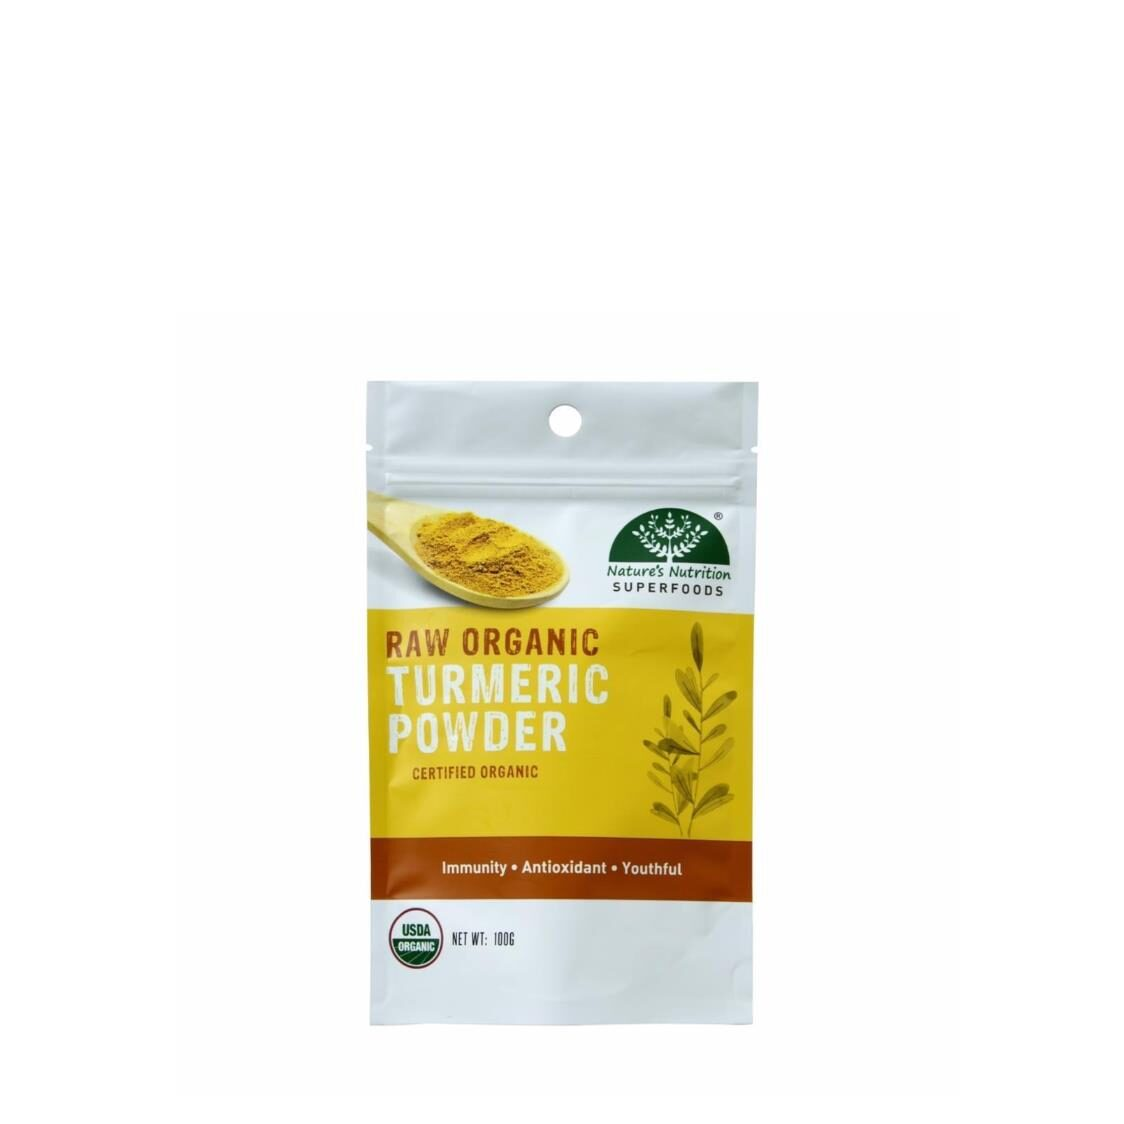 Natures Nutrition Organic Turmeric Powder 100g